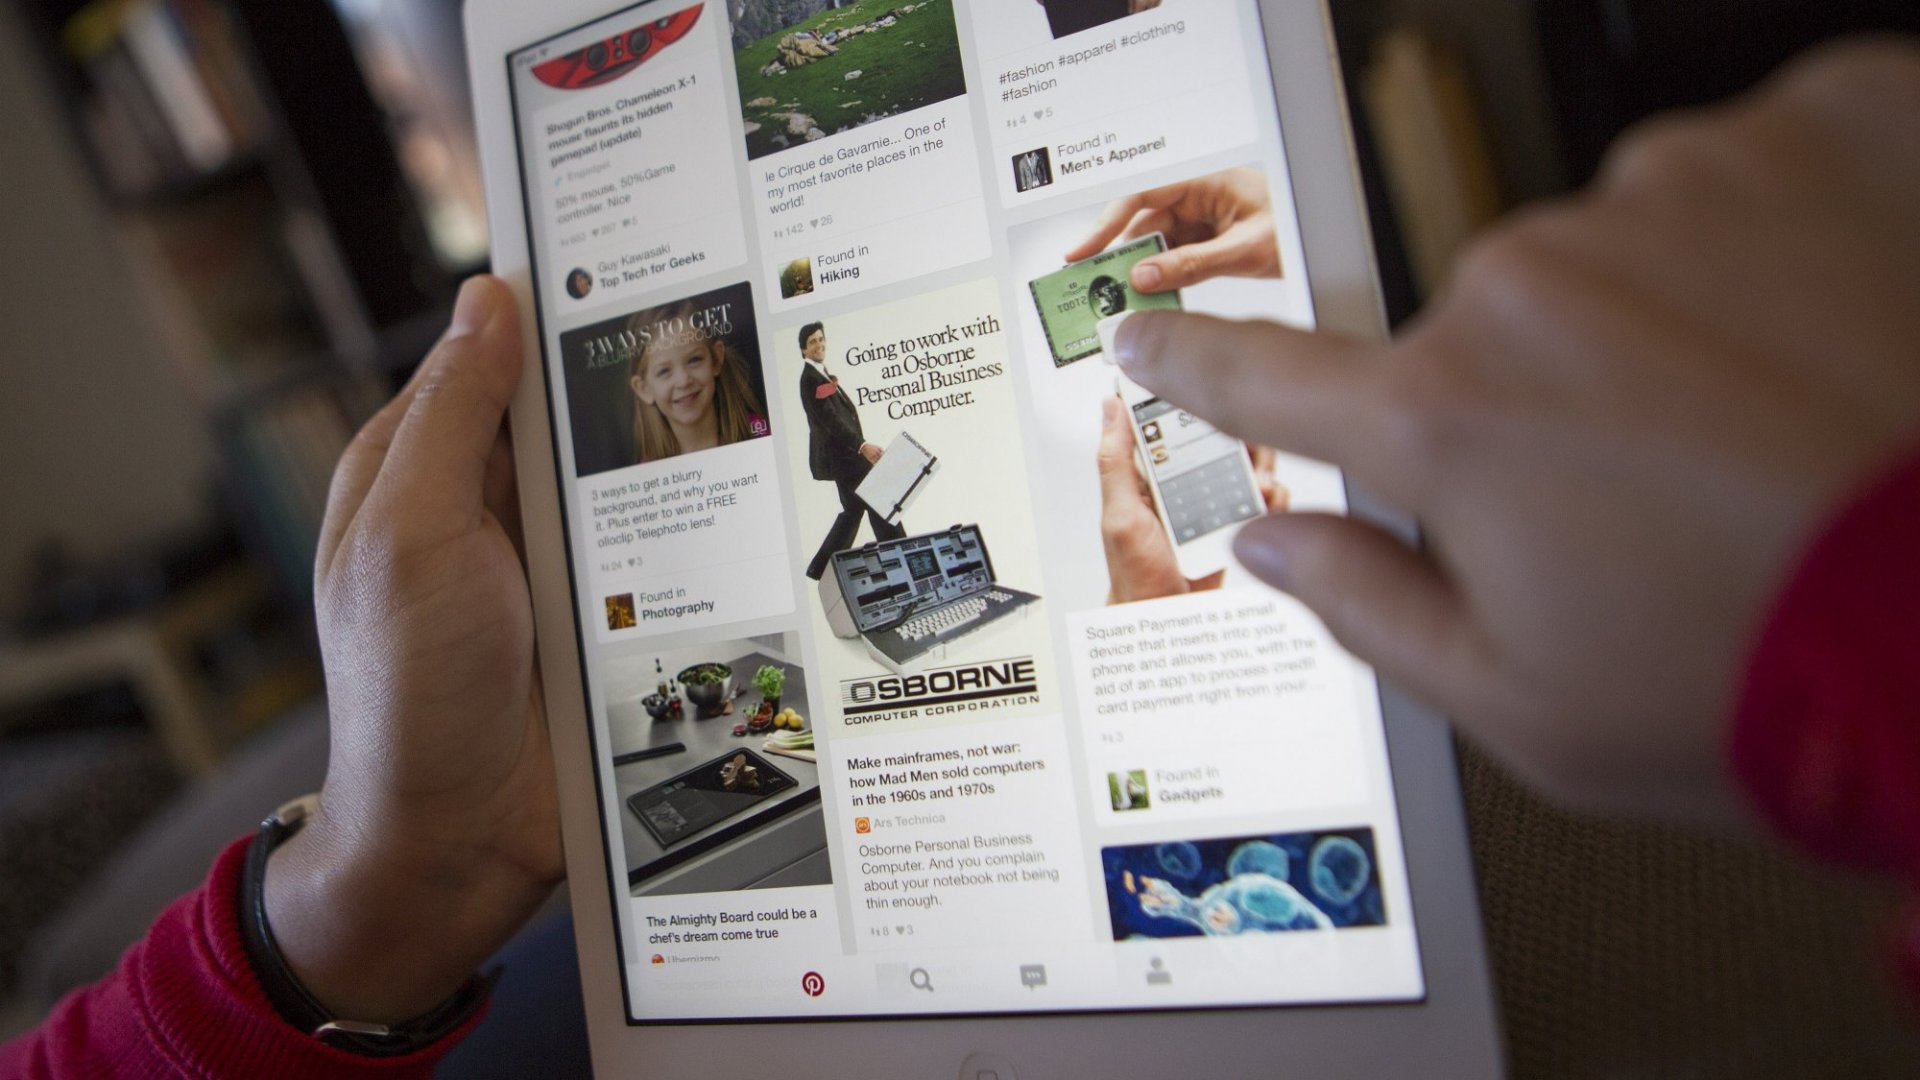 With $11 Billion Valuation, Pinterest Is Tech's Newest Unicorn